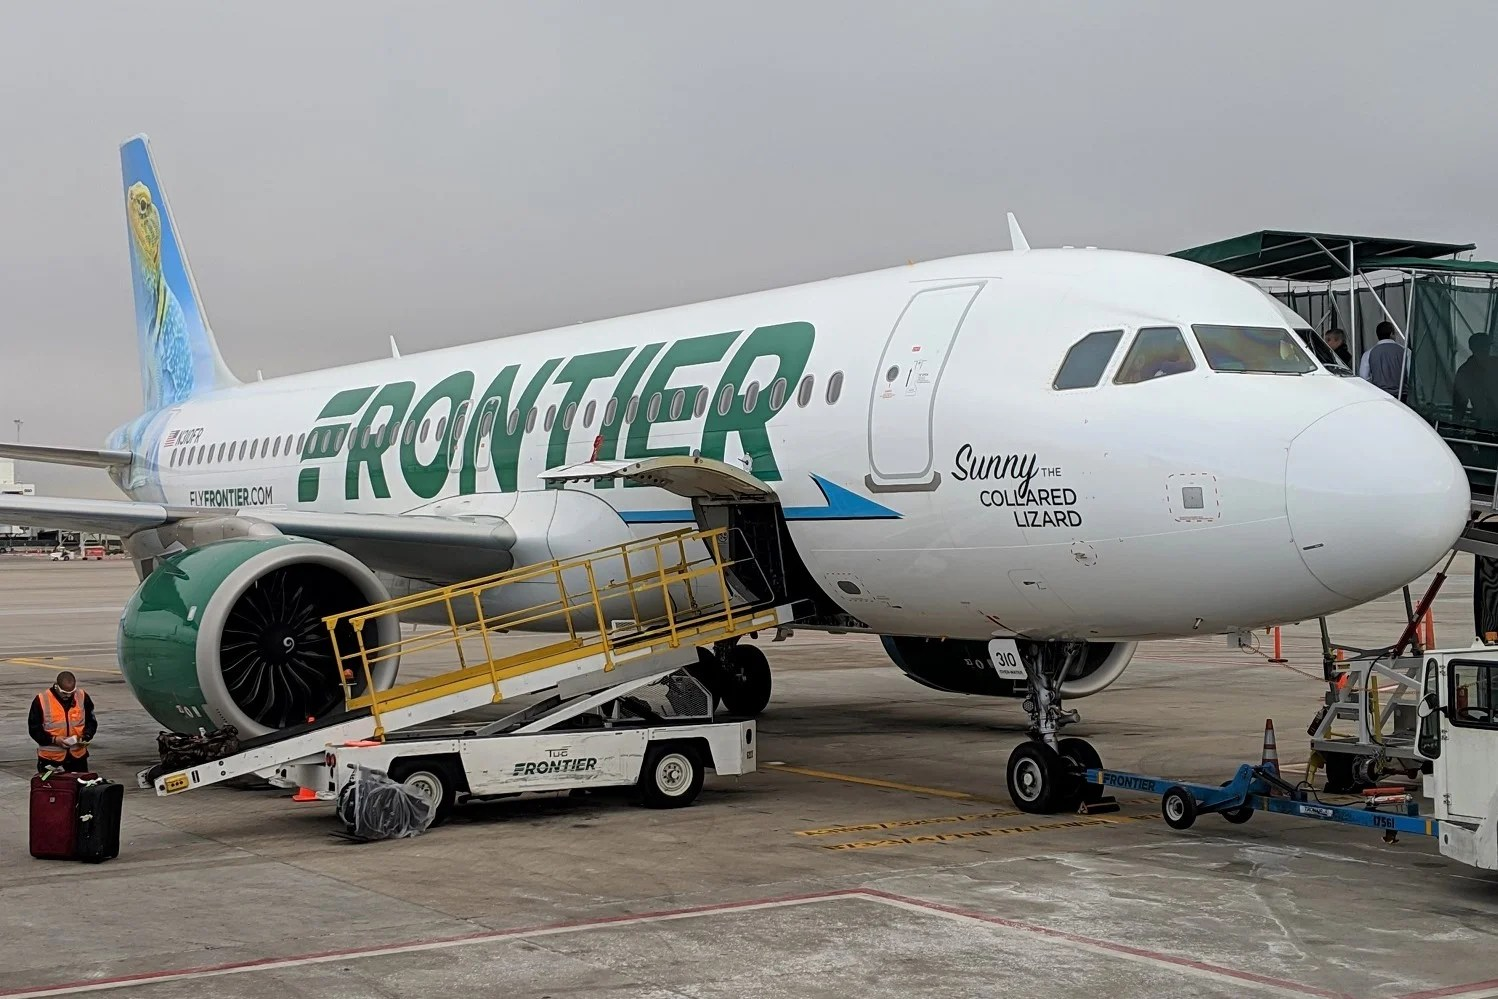 Today Only: Frontier Airlines 90% Off Labor Day Sale, Flights From $37 Round-Trip